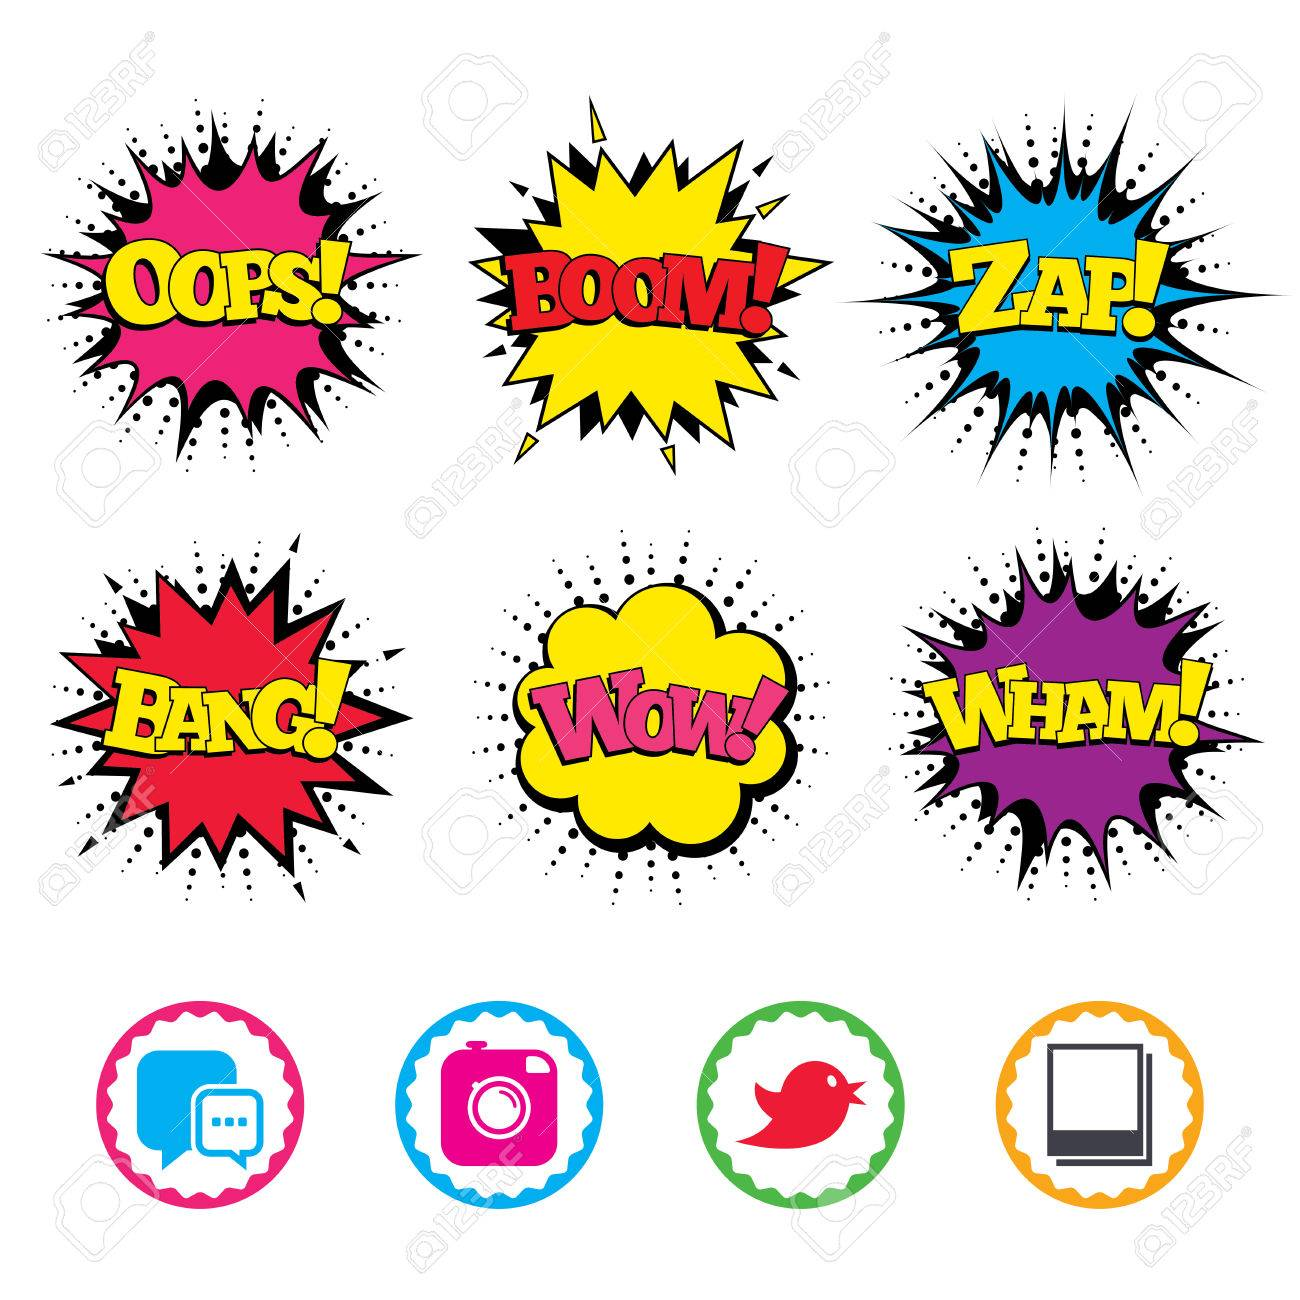 Comic Wow, Oops, Boom and Wham sound effects  Social media icons